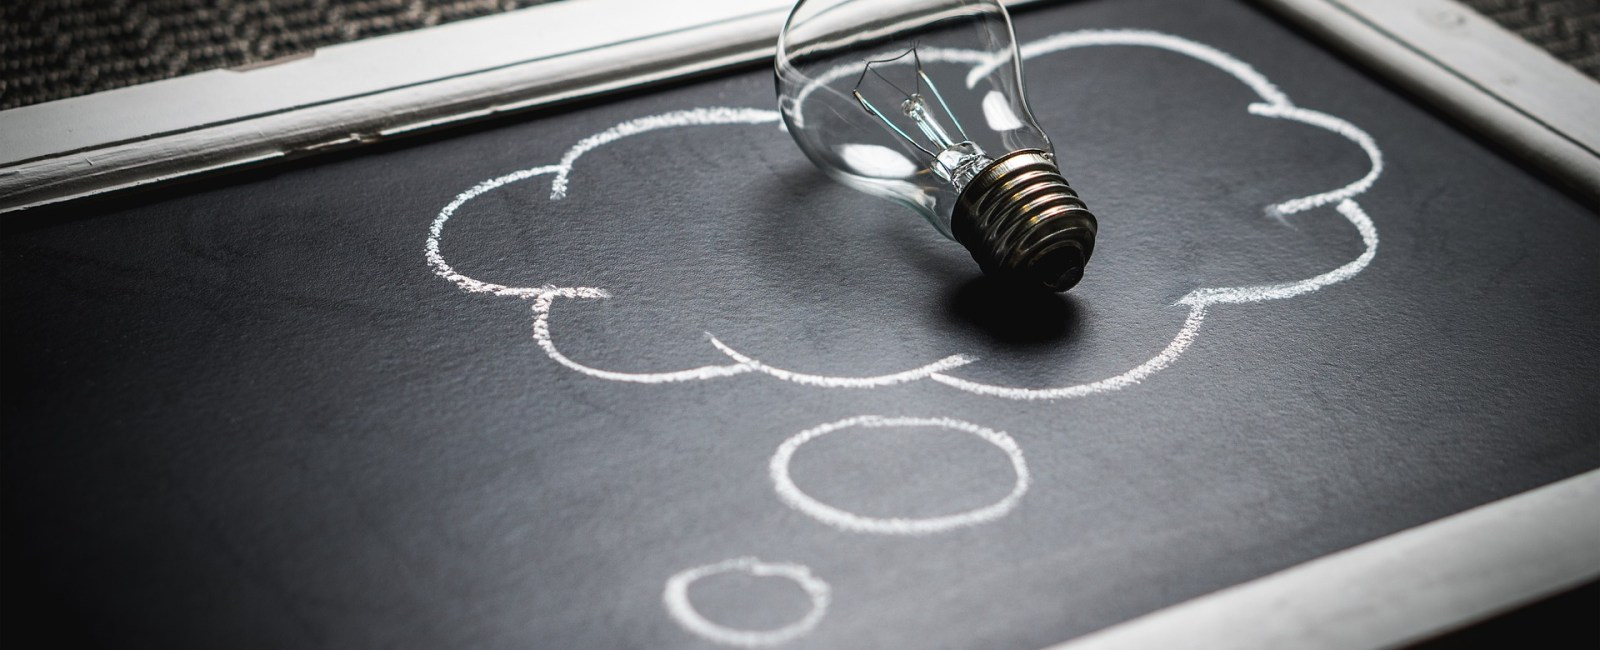 learning class training lightbulb (Photo credit: TeroVesalainen / Pixabay)